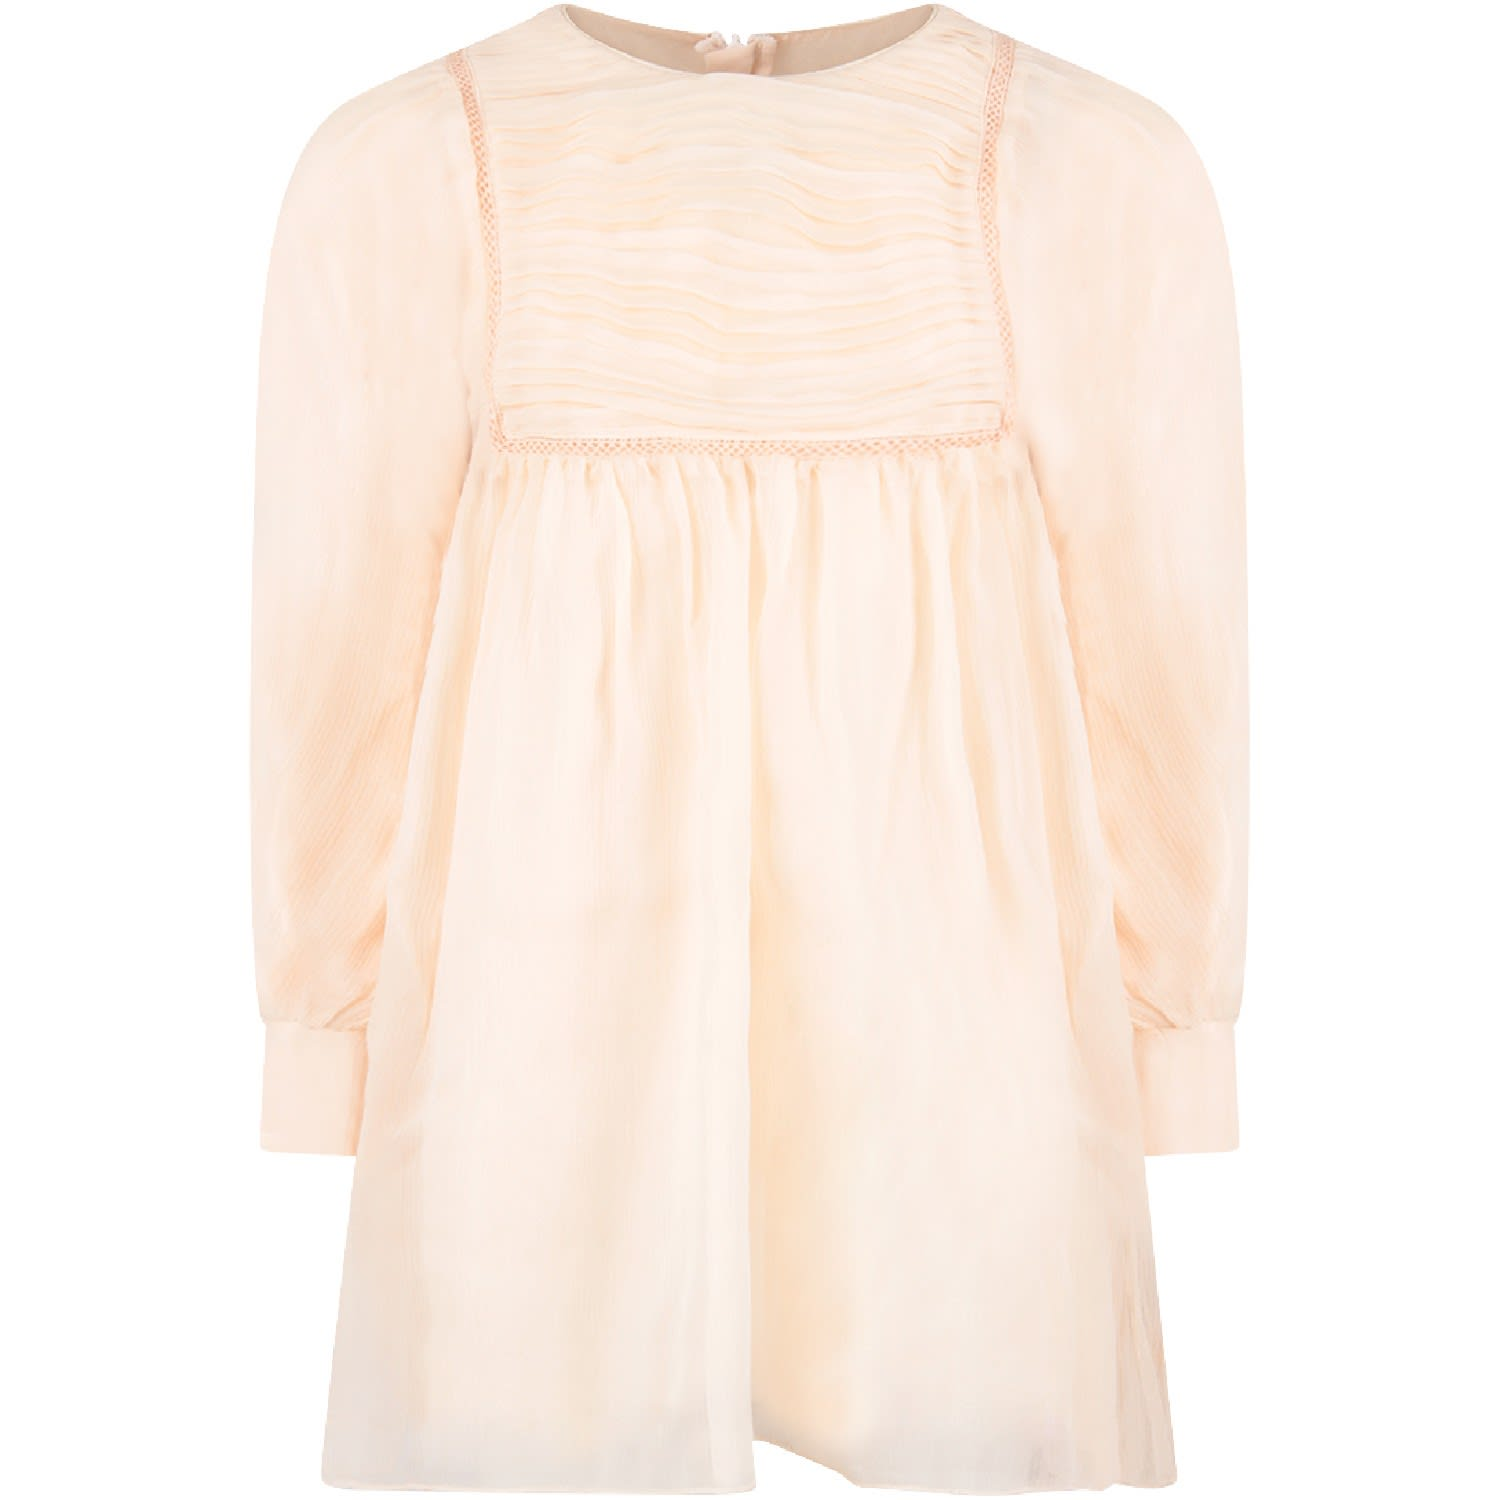 Buy Chloé Pink Chiffon Girl Dress online, shop Chloé with free shipping